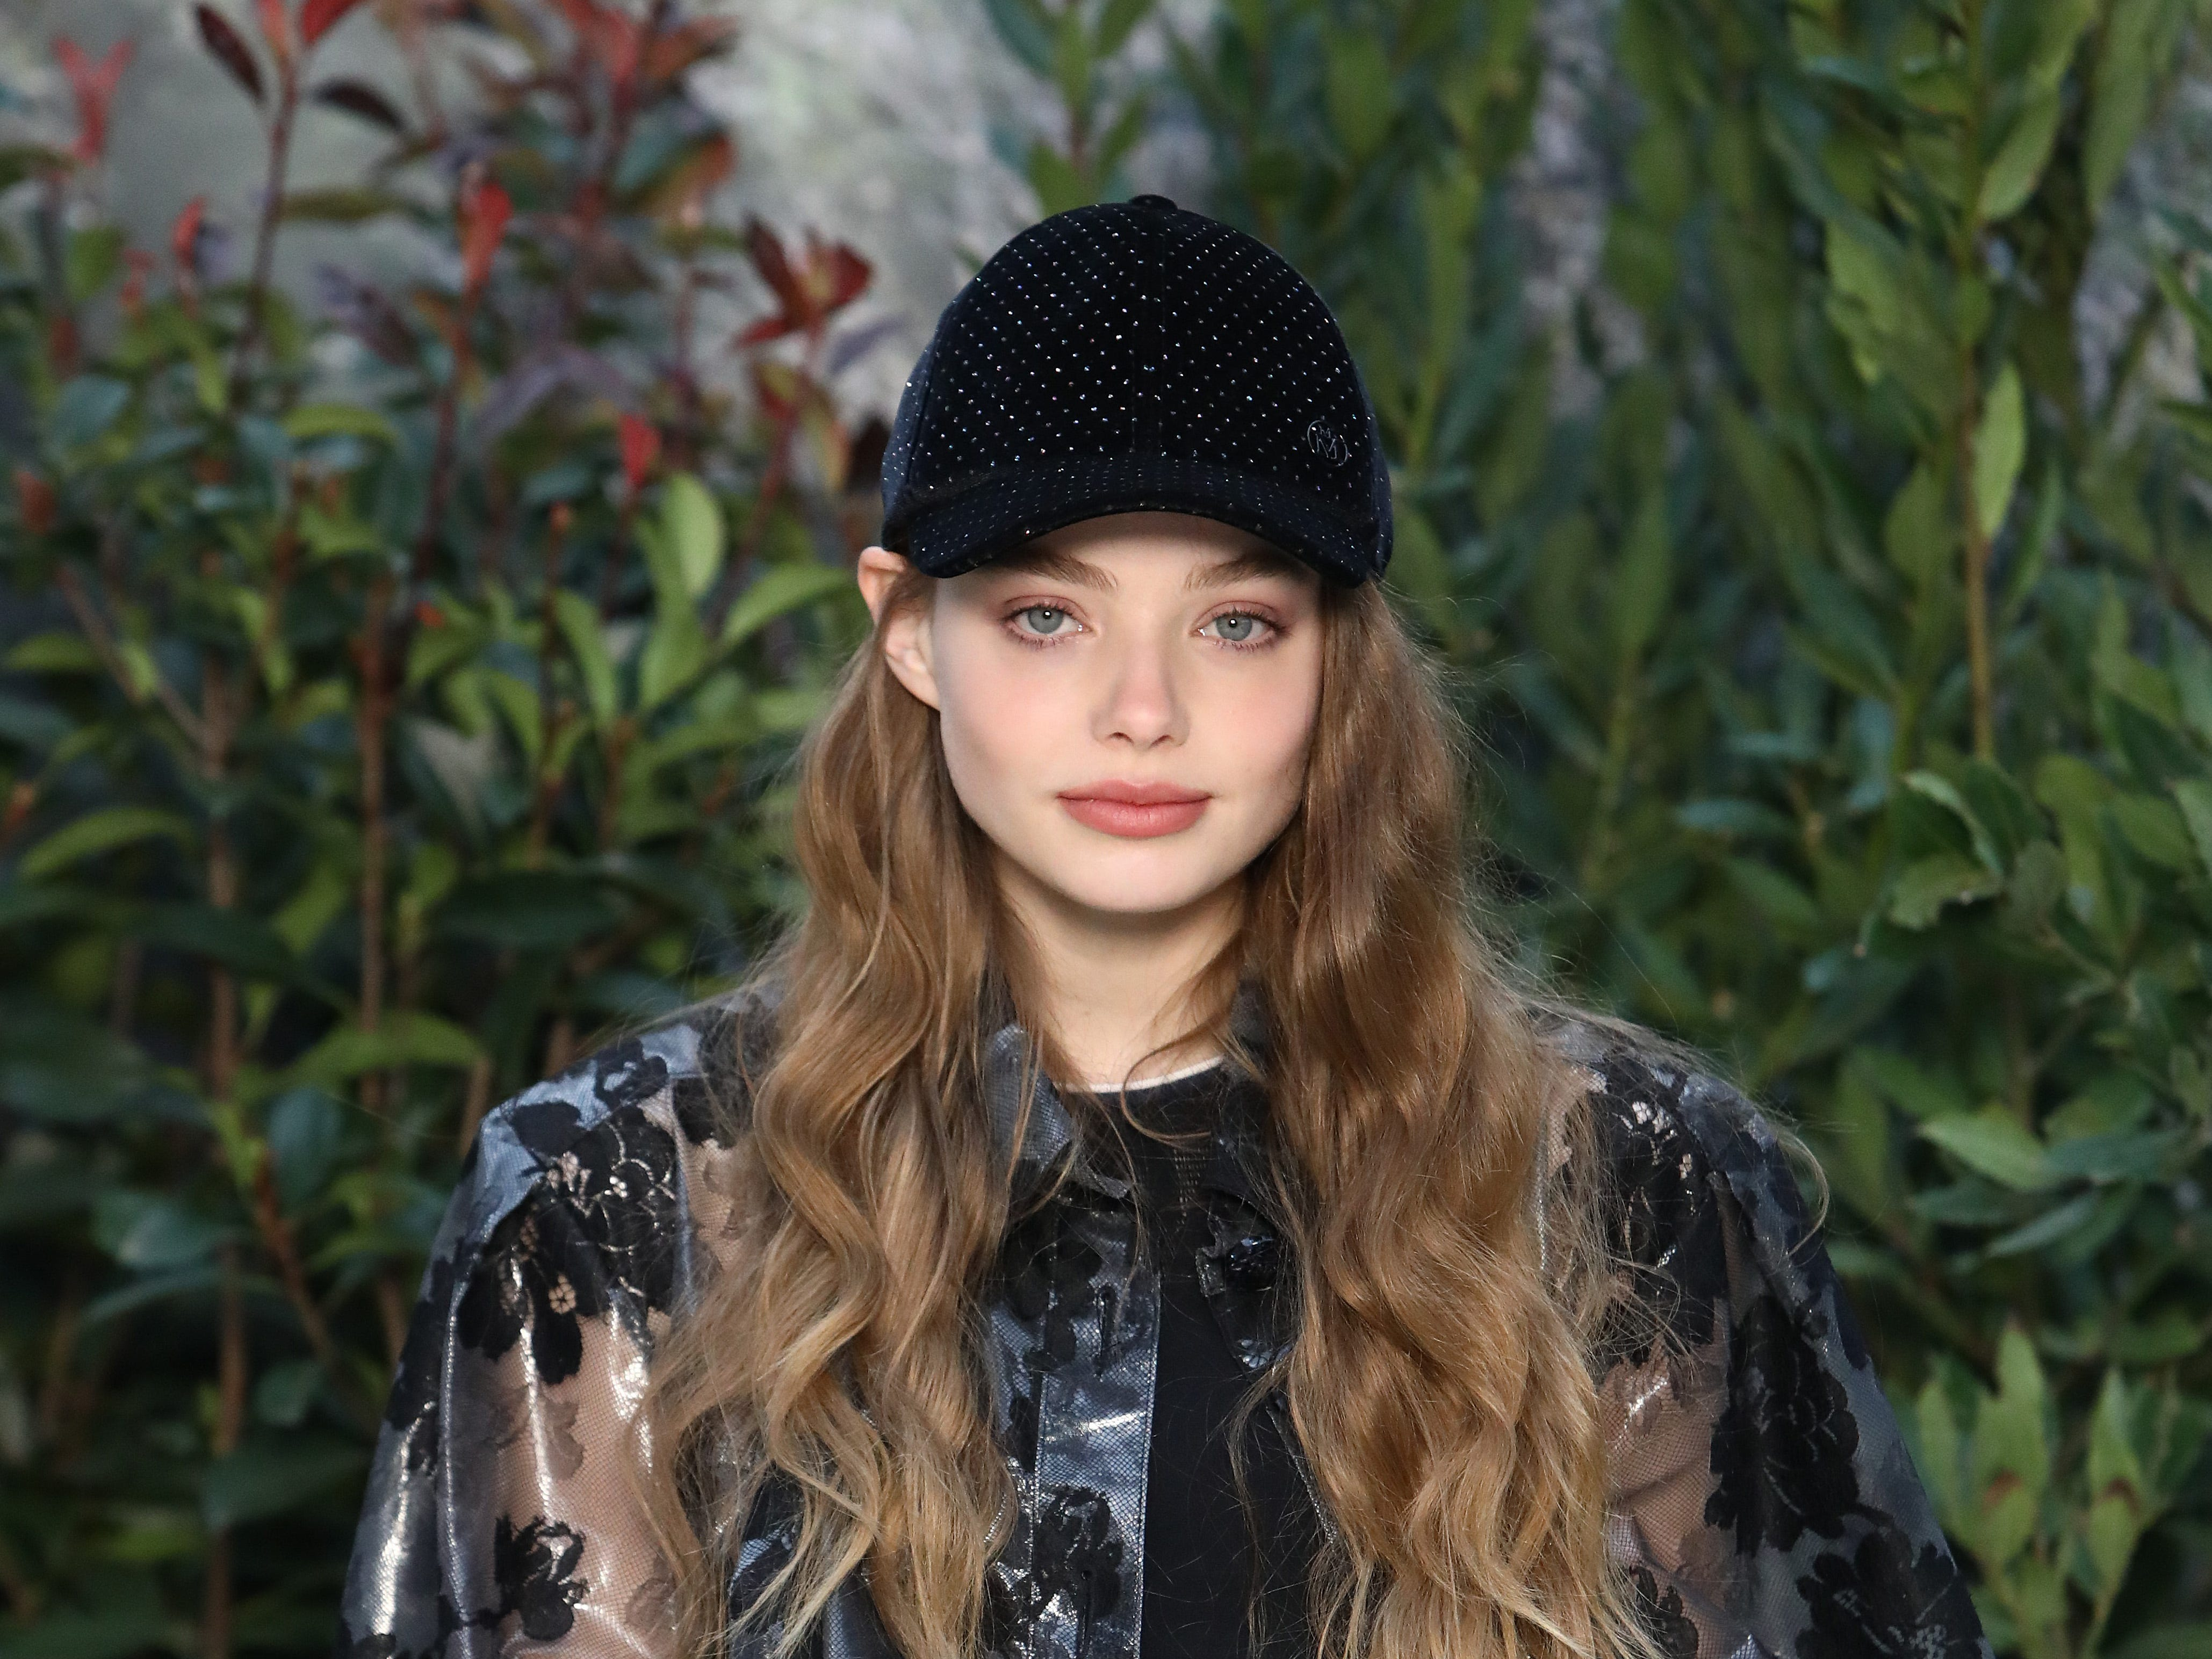 PARIS, FRANCE - JANUARY 22: Kristine Froseth attends the Chanel Haute Couture Spring Summer 2019 show as part of Paris Fashion Week  on January 22, 2019 in Paris, France. (Photo by Julien M. Hekimian/Getty Images for Chanel) ORG XMIT: 775281016 ORIG FILE ID: 1097988840